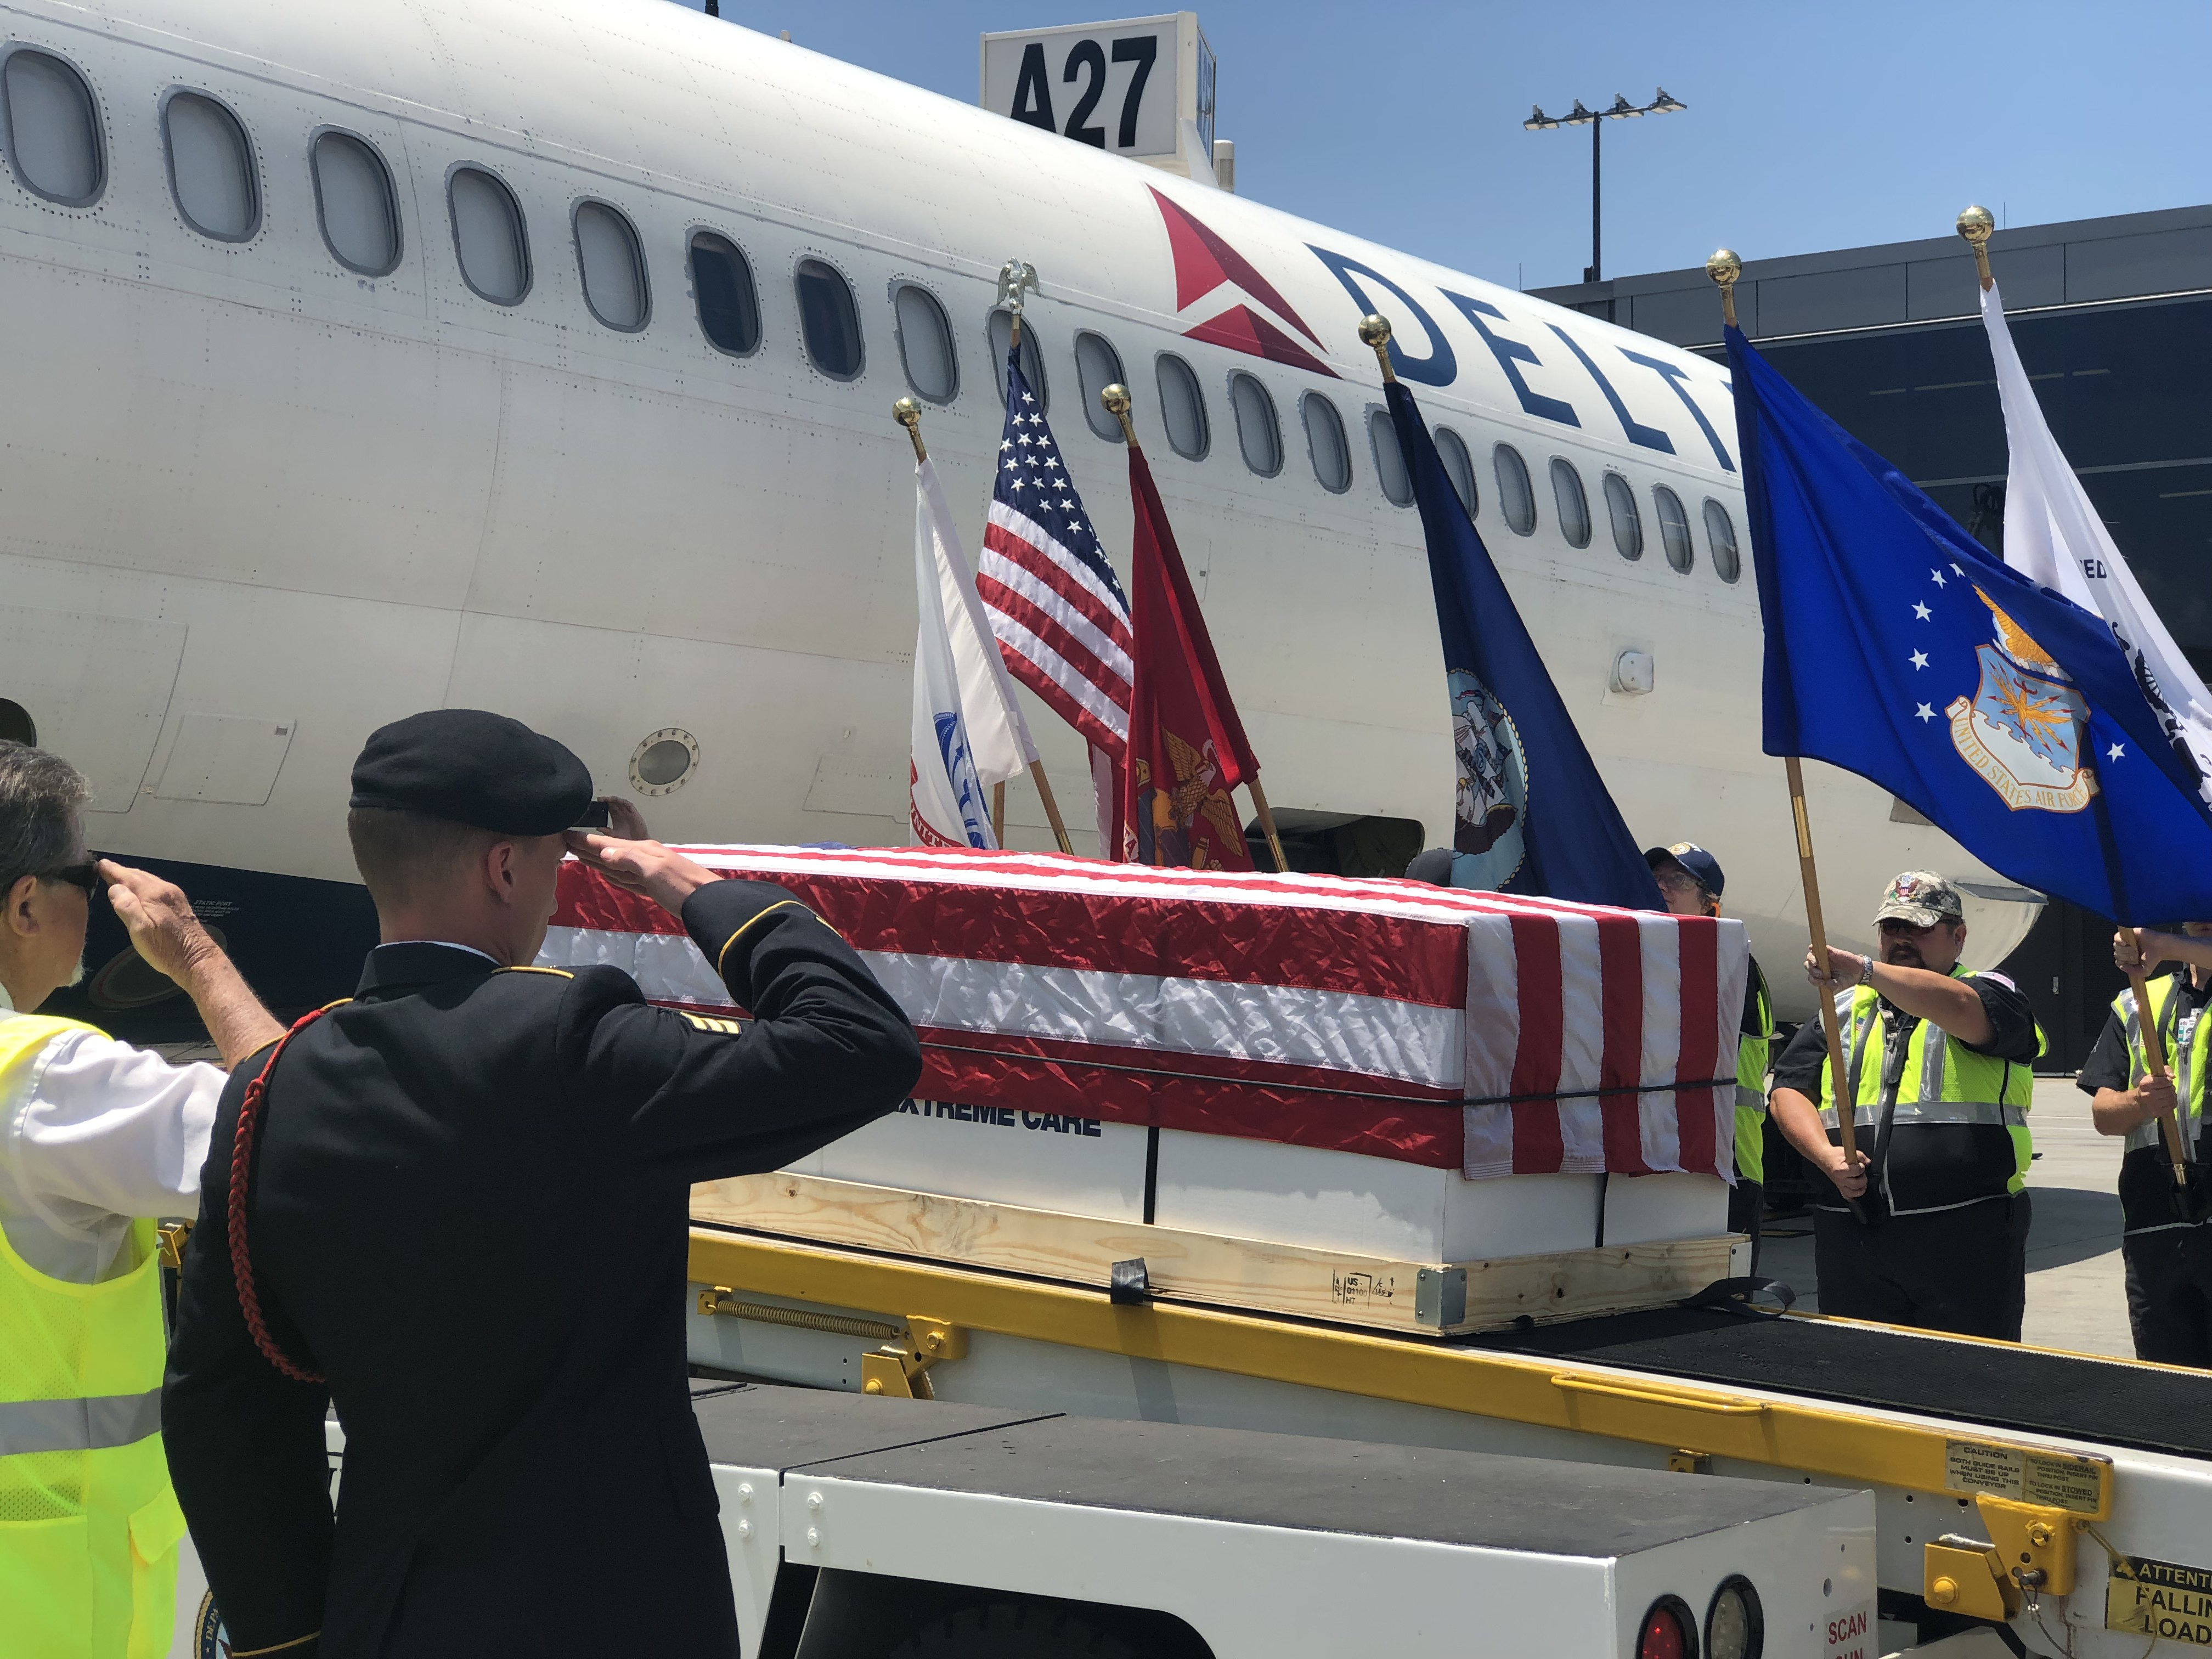 Handle with care: Delta Honor Guard memorializes fallen soldiers